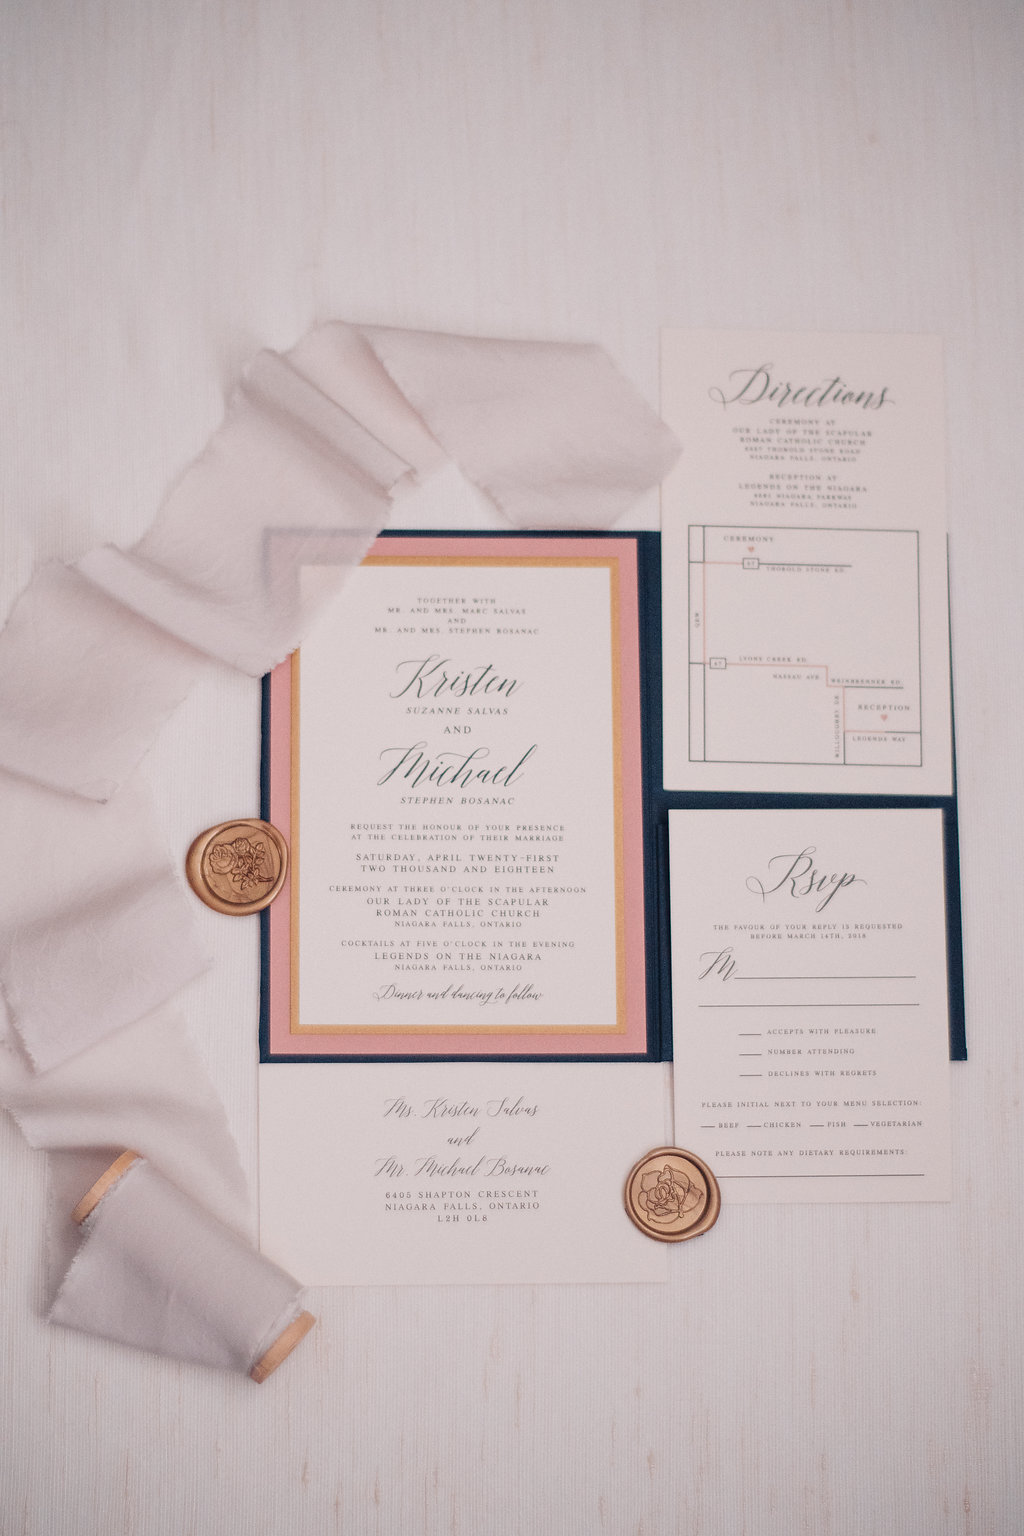 Wedding invitations by All That's Lovely